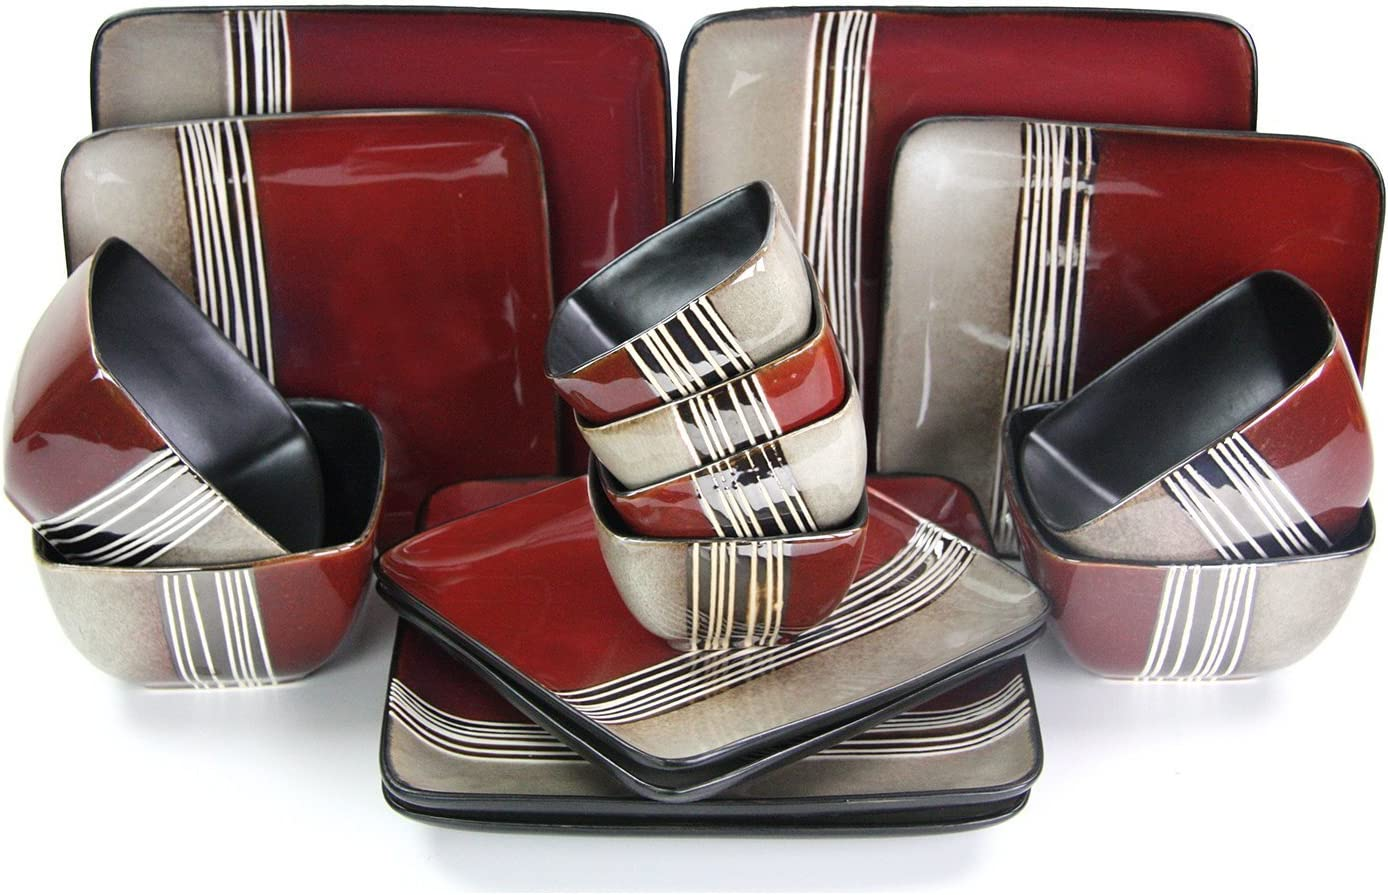 Elama Square Stoneware Loft Collection Dinnerware Dish Set, 16 Piece, Red and Tan with White Accents